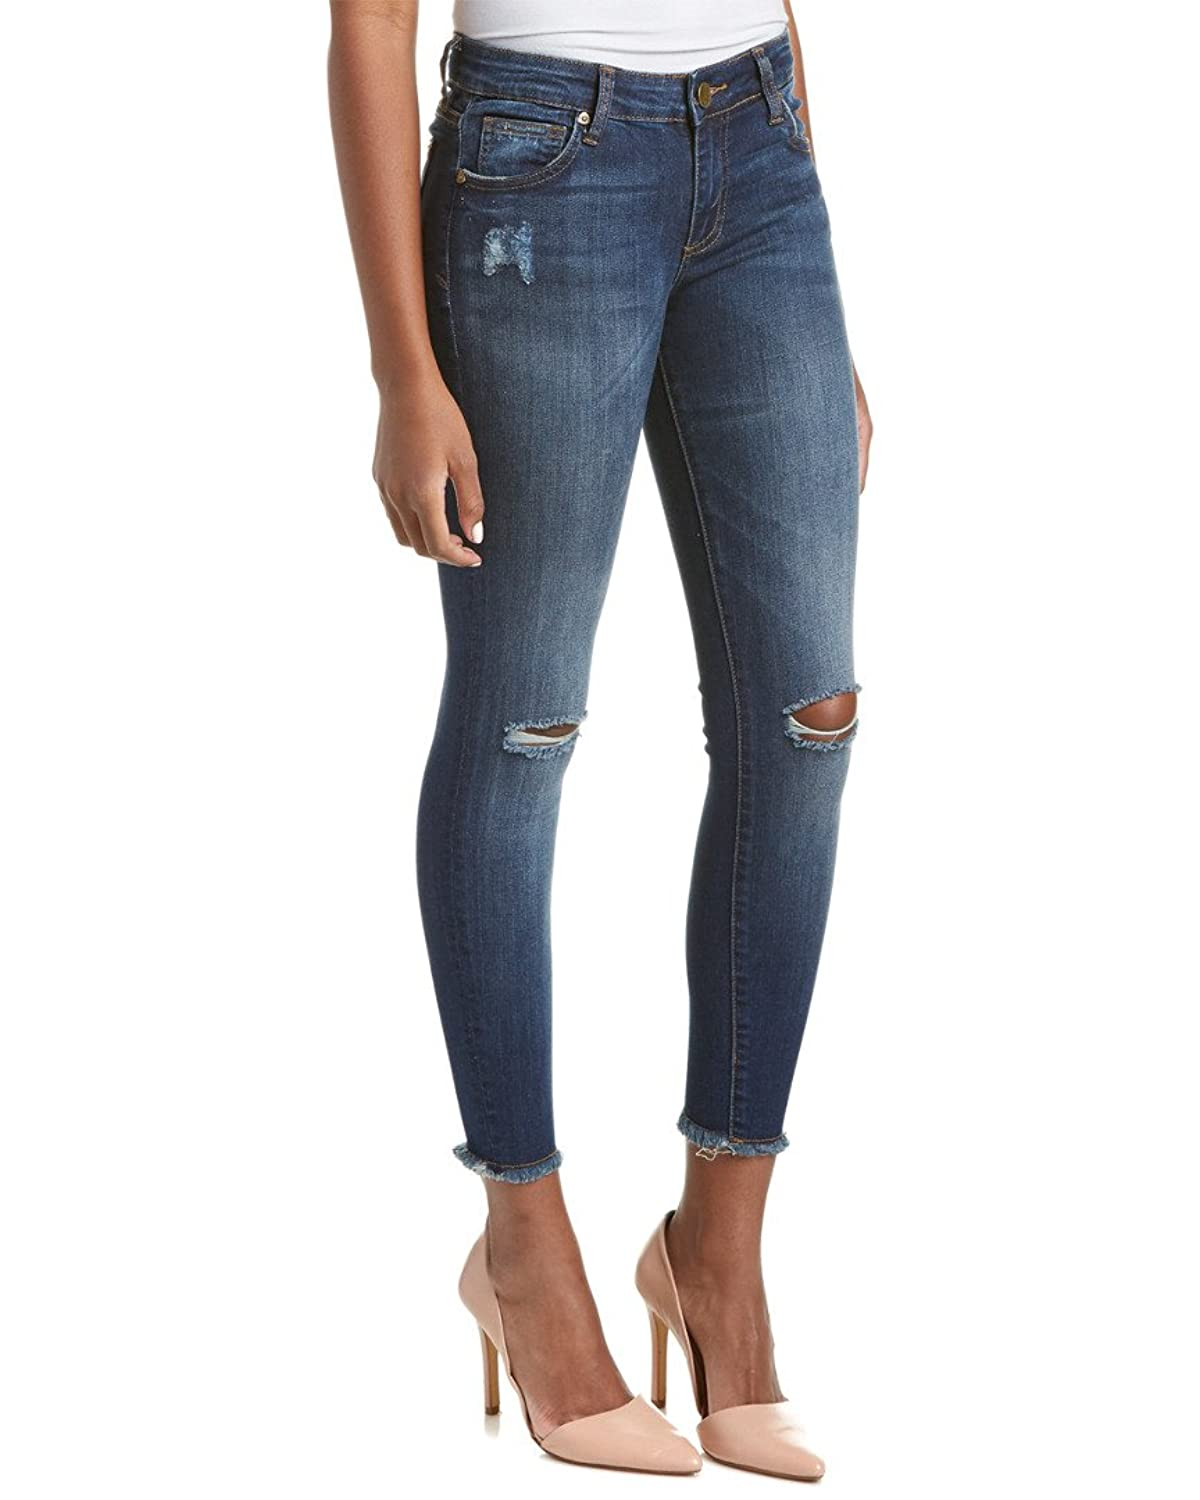 KUT from the Kloth Women's Connie Ankle Skinny Fray Hem in Skilled w/ Dark Stone Base Wash